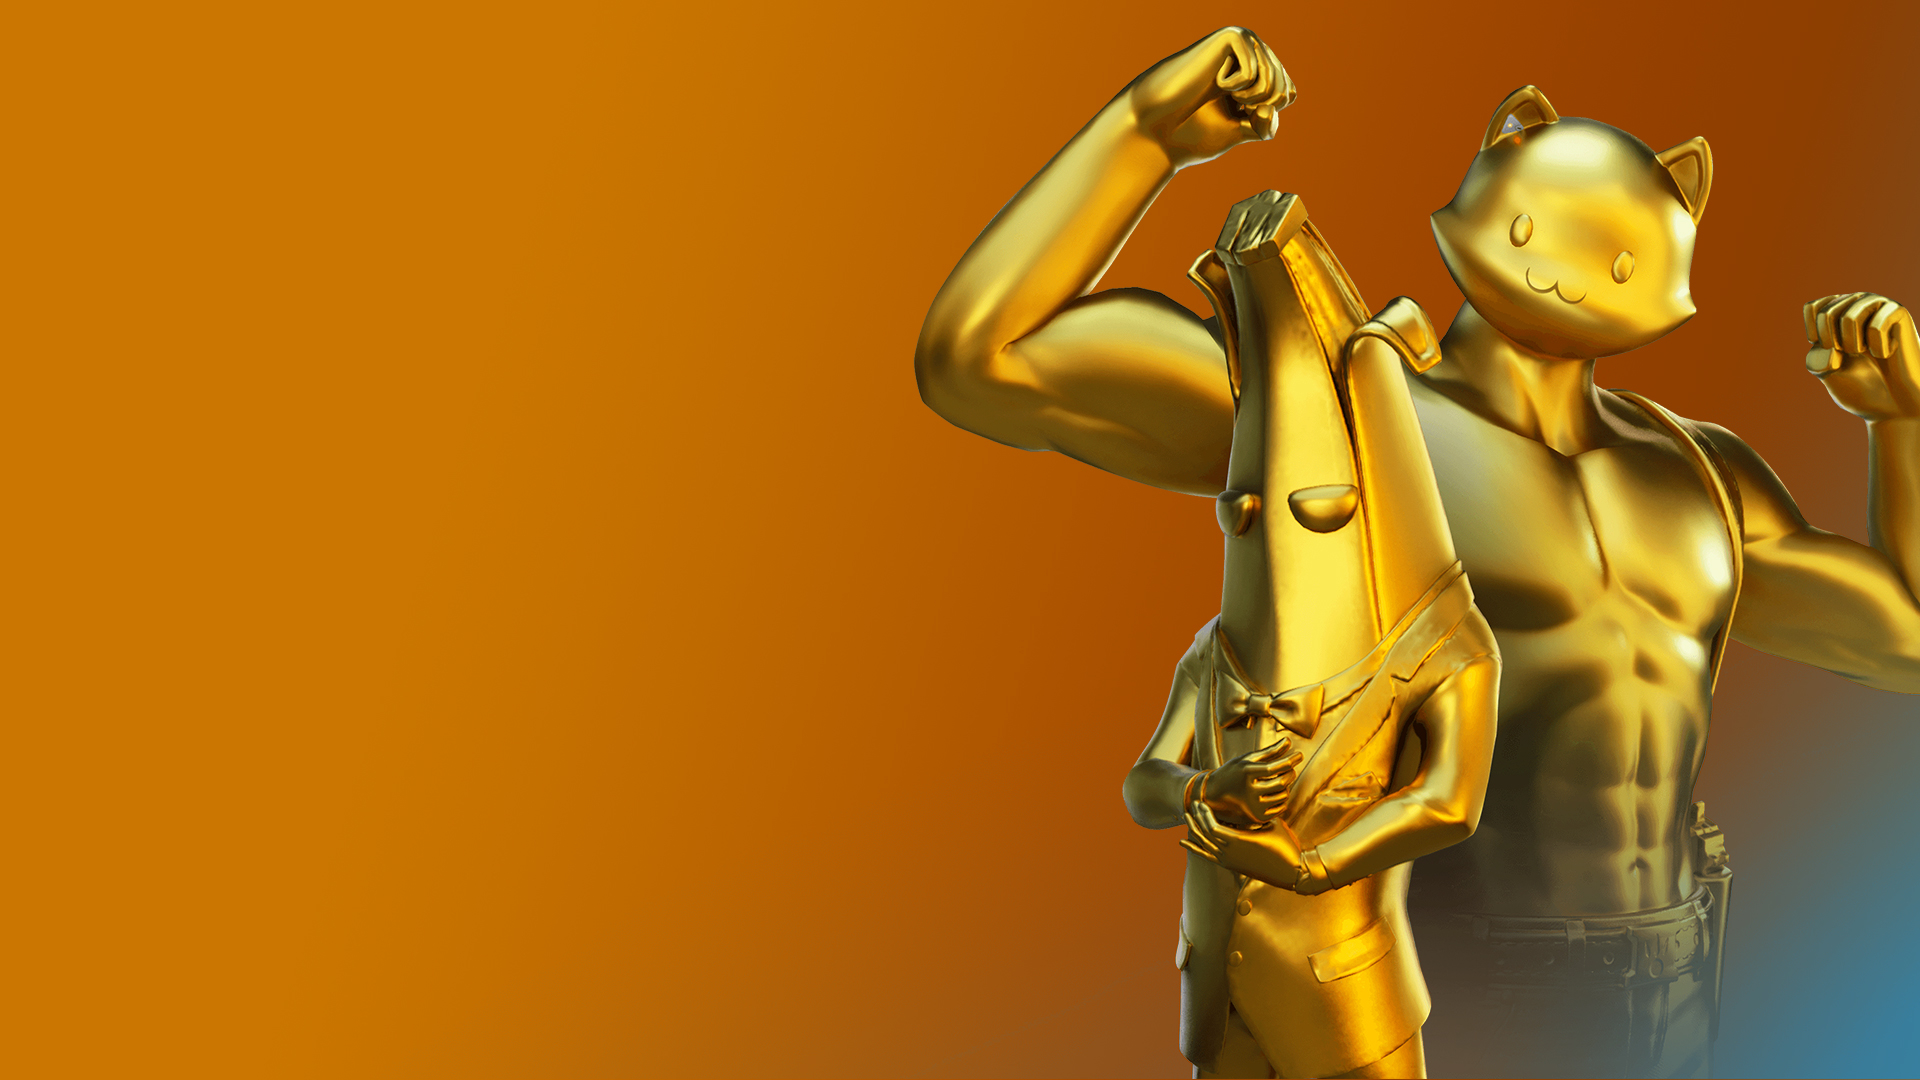 1920x1200 Gold Agent Peely And Meowscles Fortnite Season 12 Skin 1200p Wallpaper Hd Games 4k Wallpapers Images Photos And Background